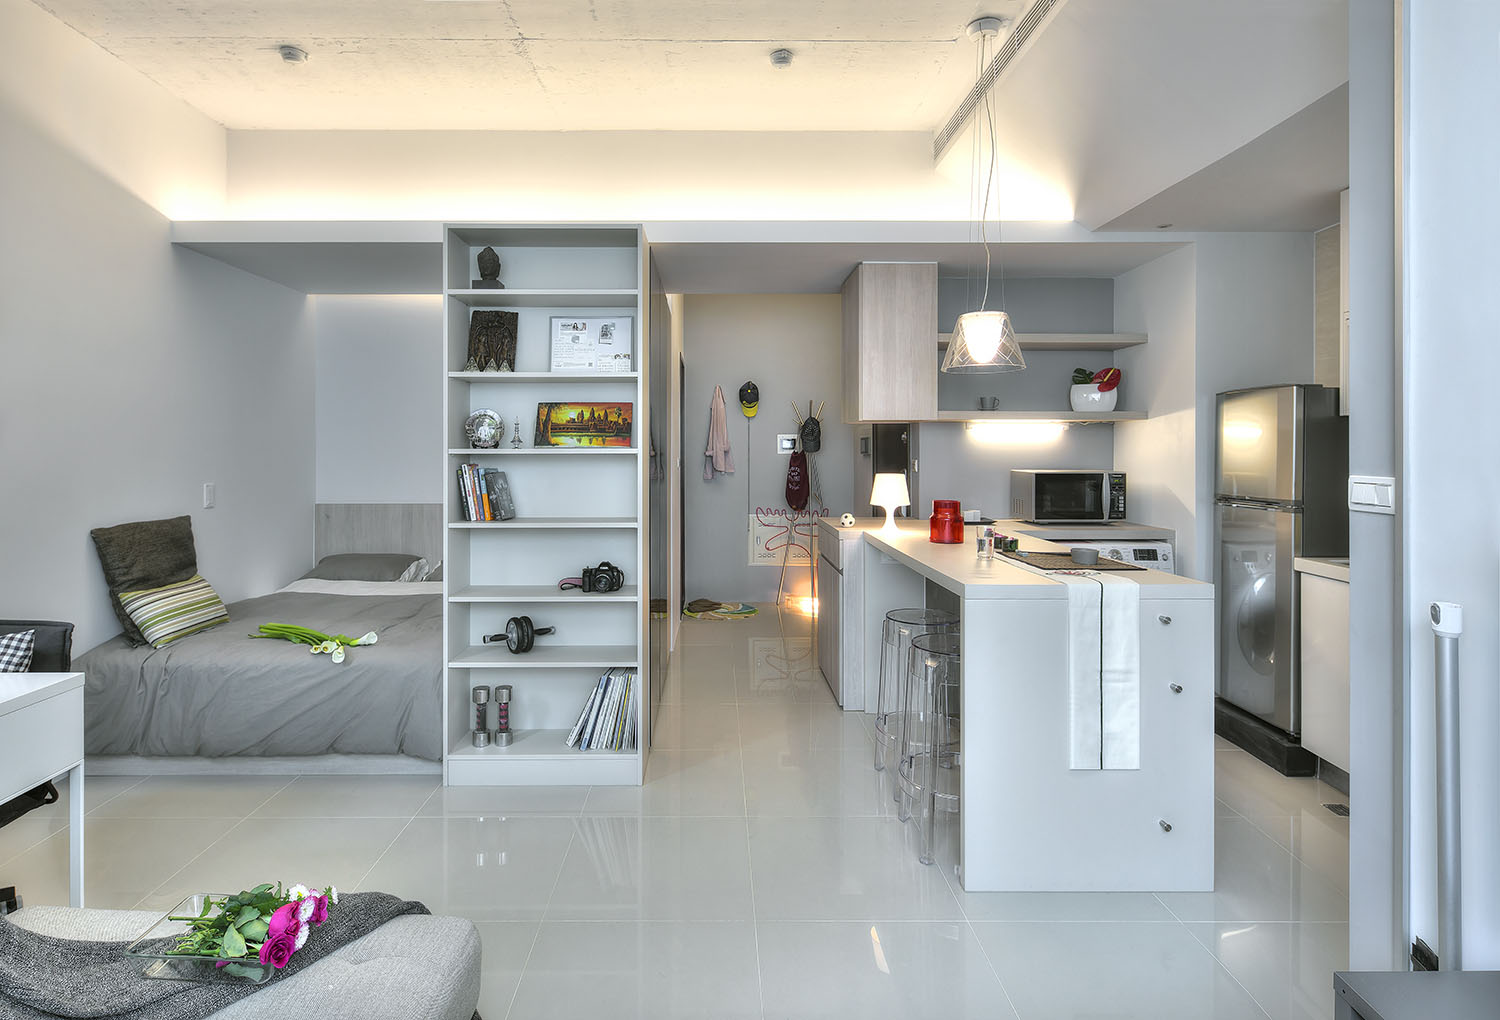 Studio Apartment Images small taipei studio apartment with clever efficient design